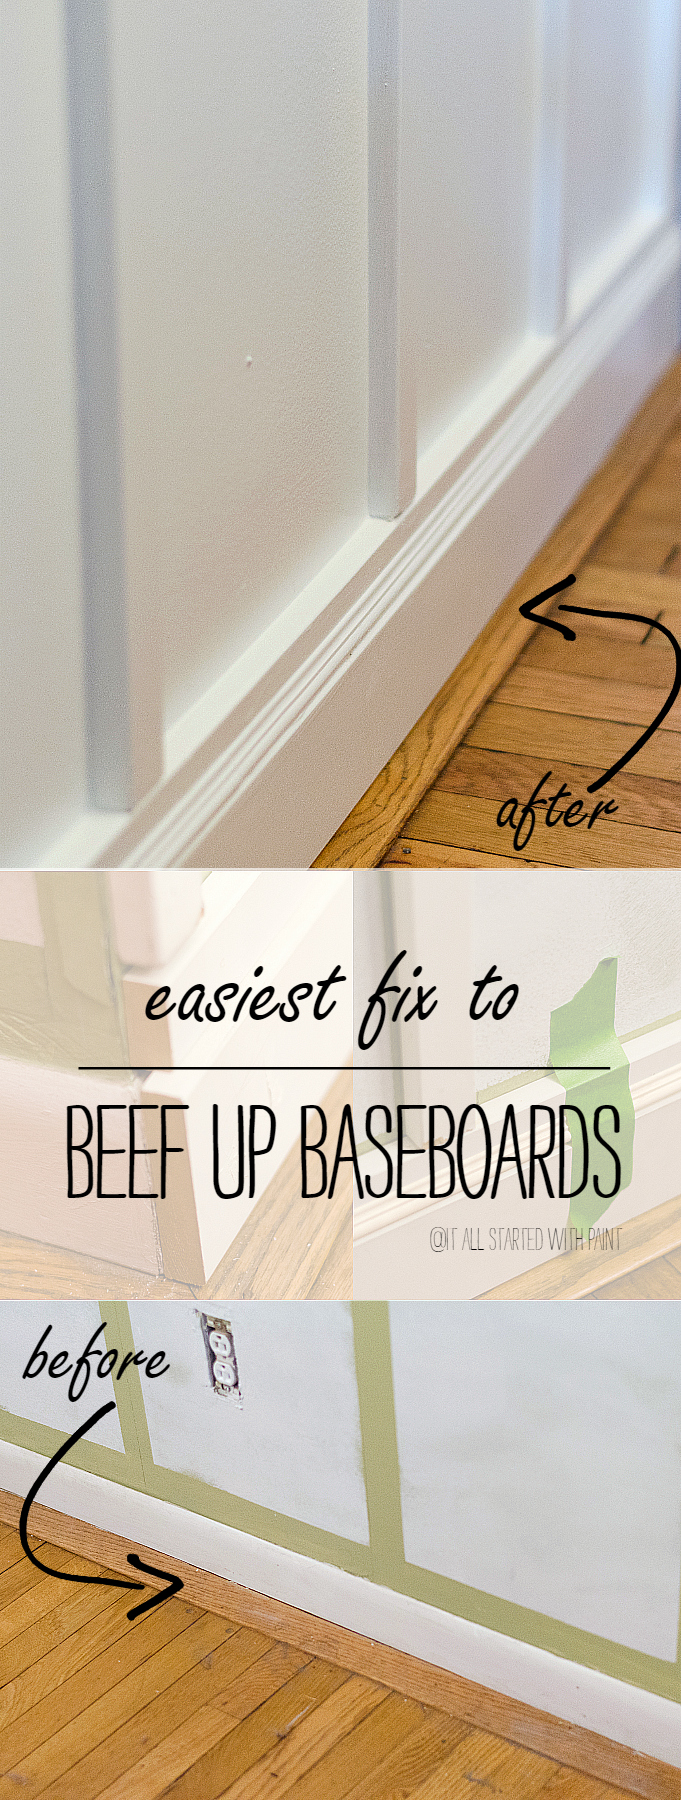 Baseboard Fix: Easy Way To Add Height and Bulk to Baseboards; No Crow Bars Needed!